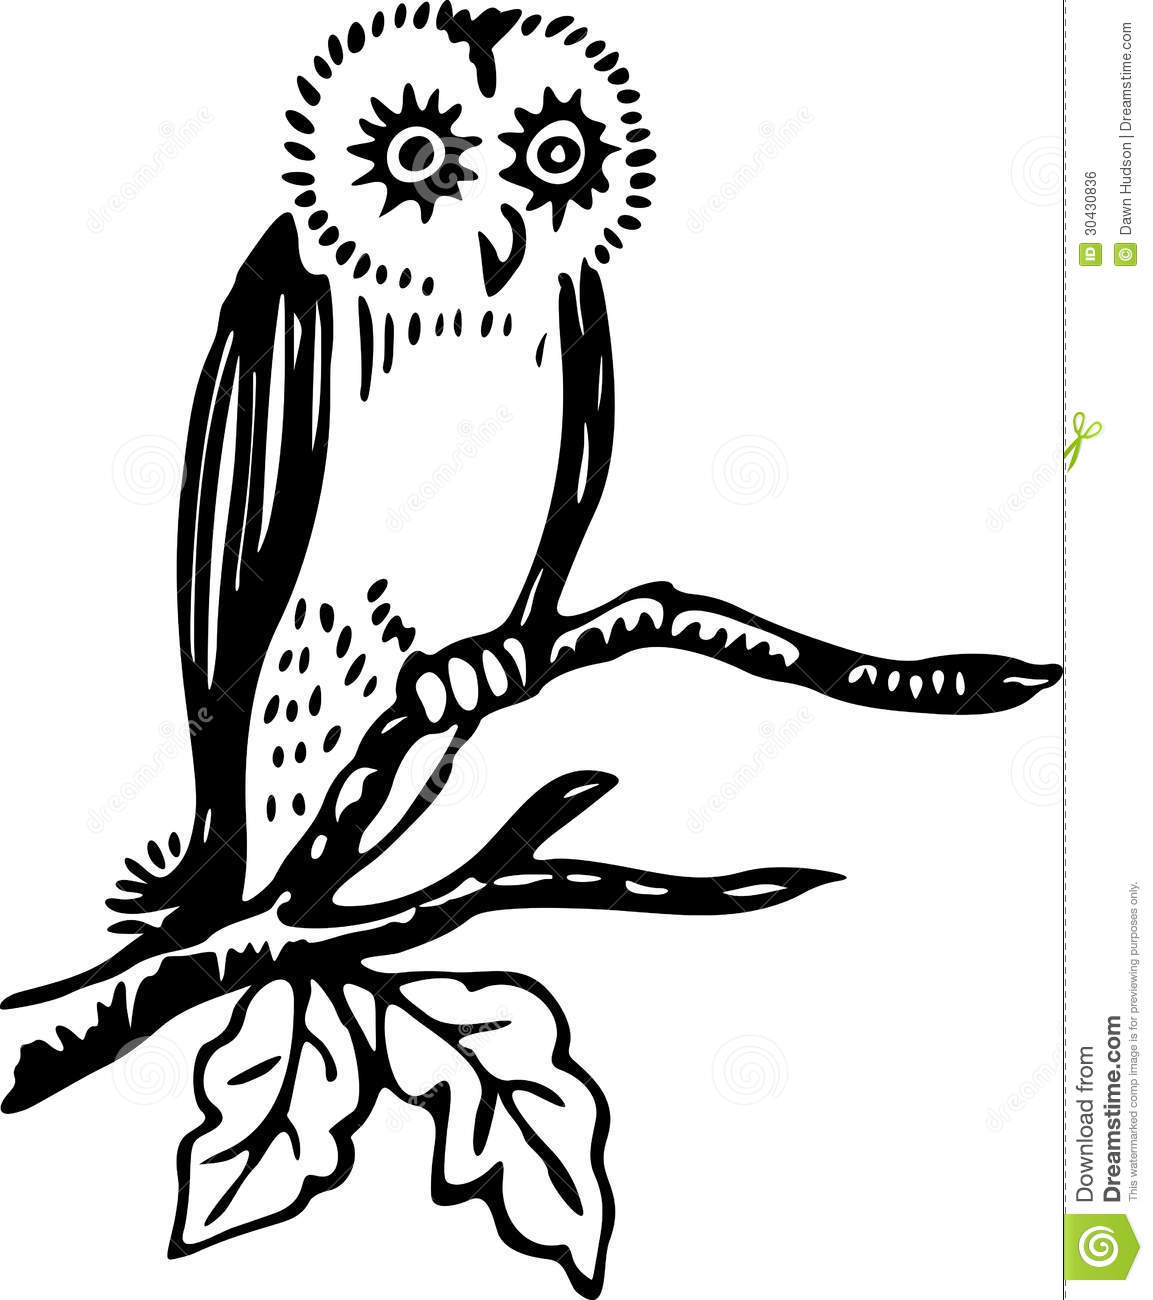 Simple Black And White Line Art : Owl stock vector image of wildlife illustration animal